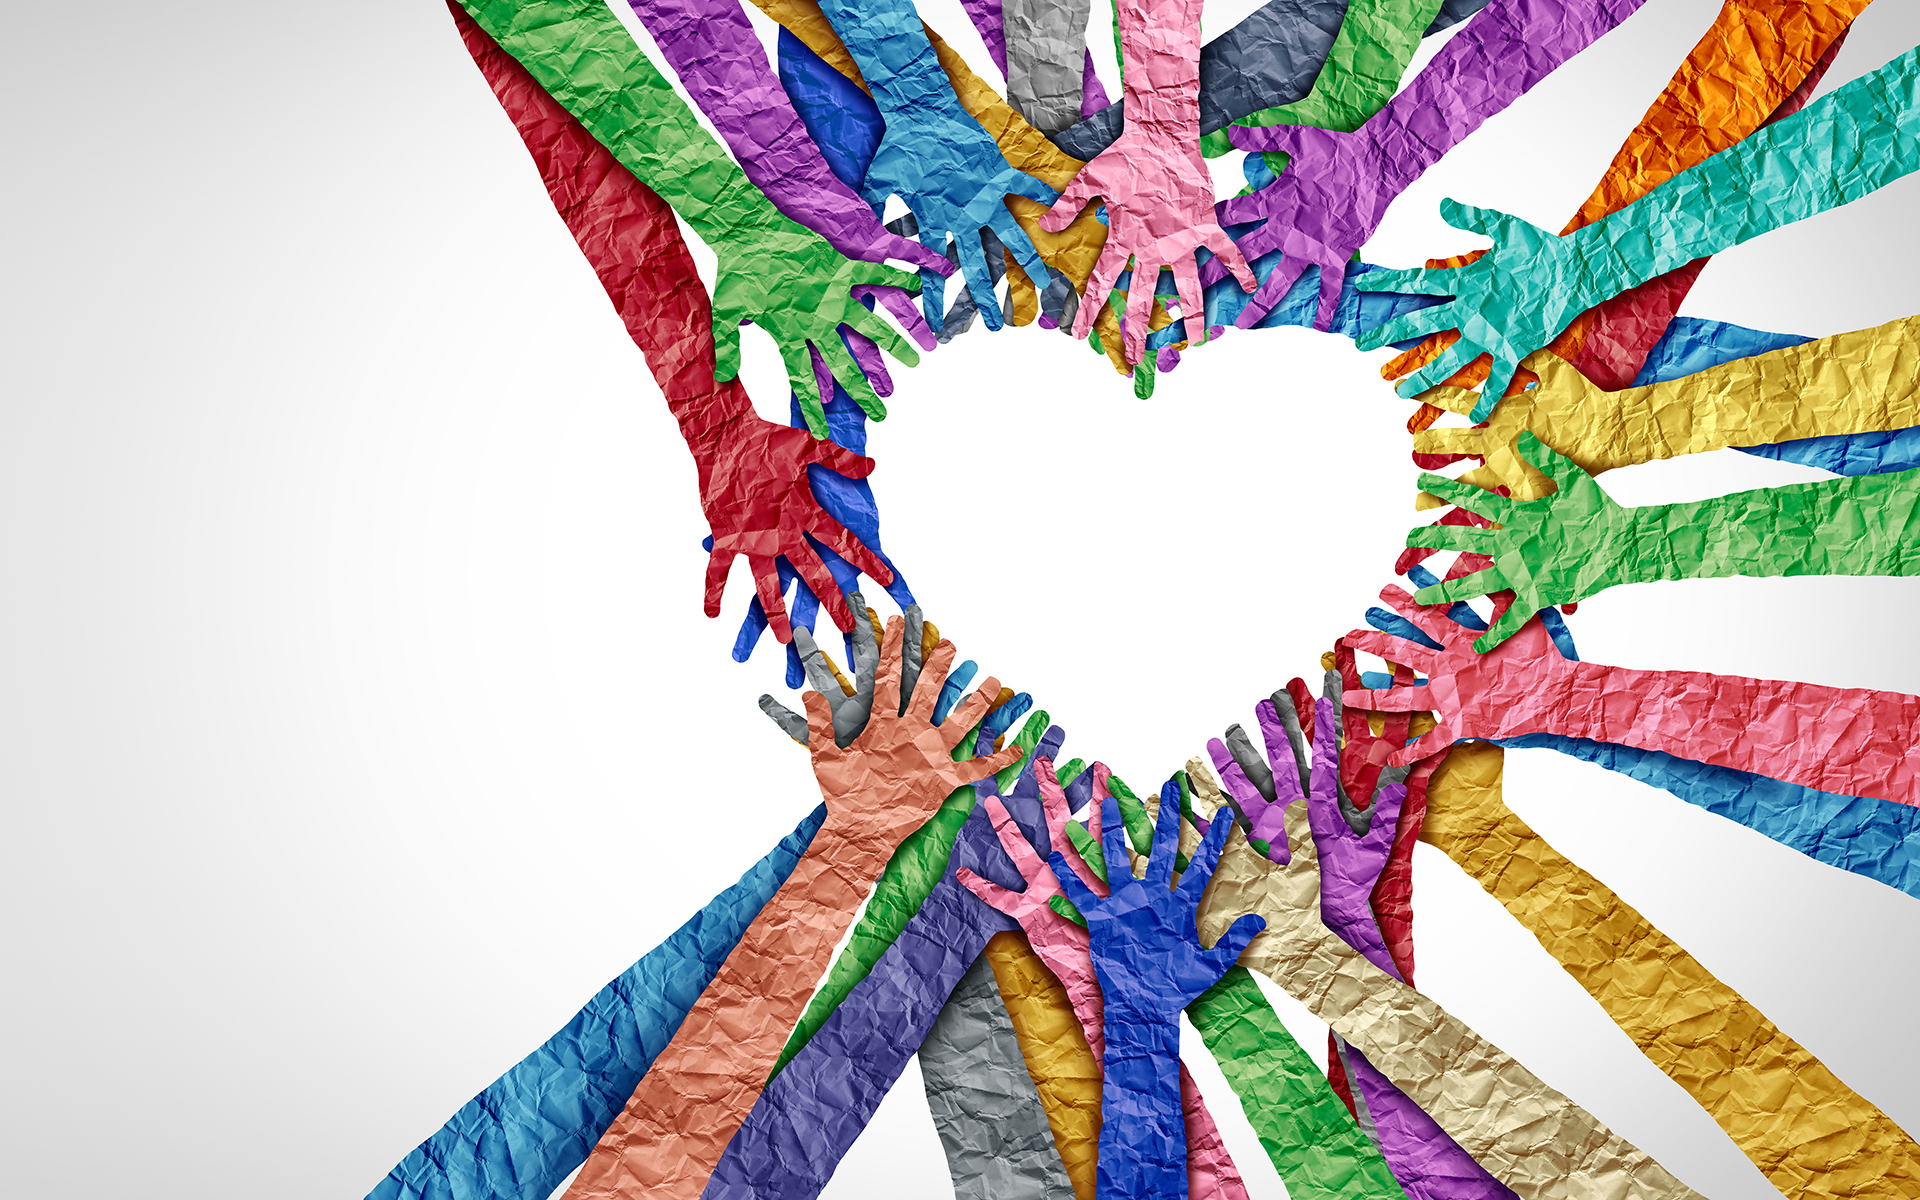 Colorful, crumbled paper hands forming a heart